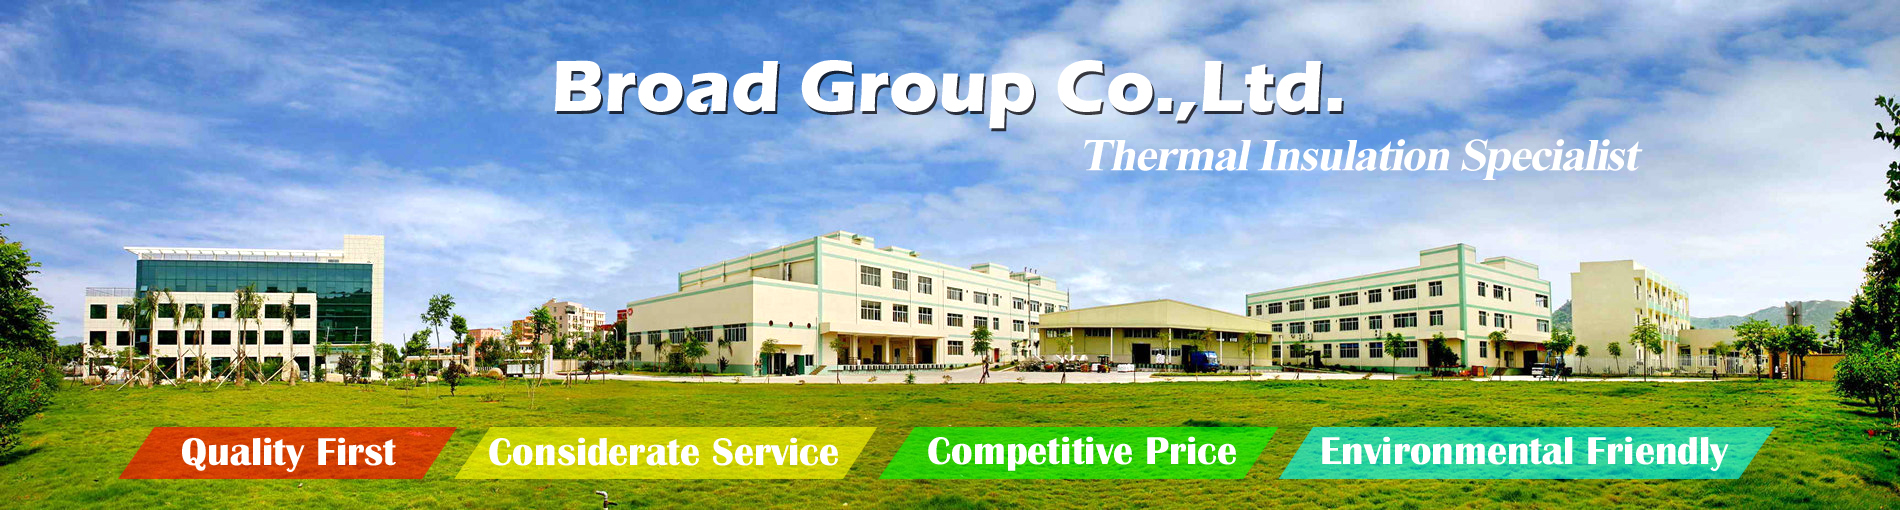 Broad Group Co., Ltd.Thermal Insulation Material